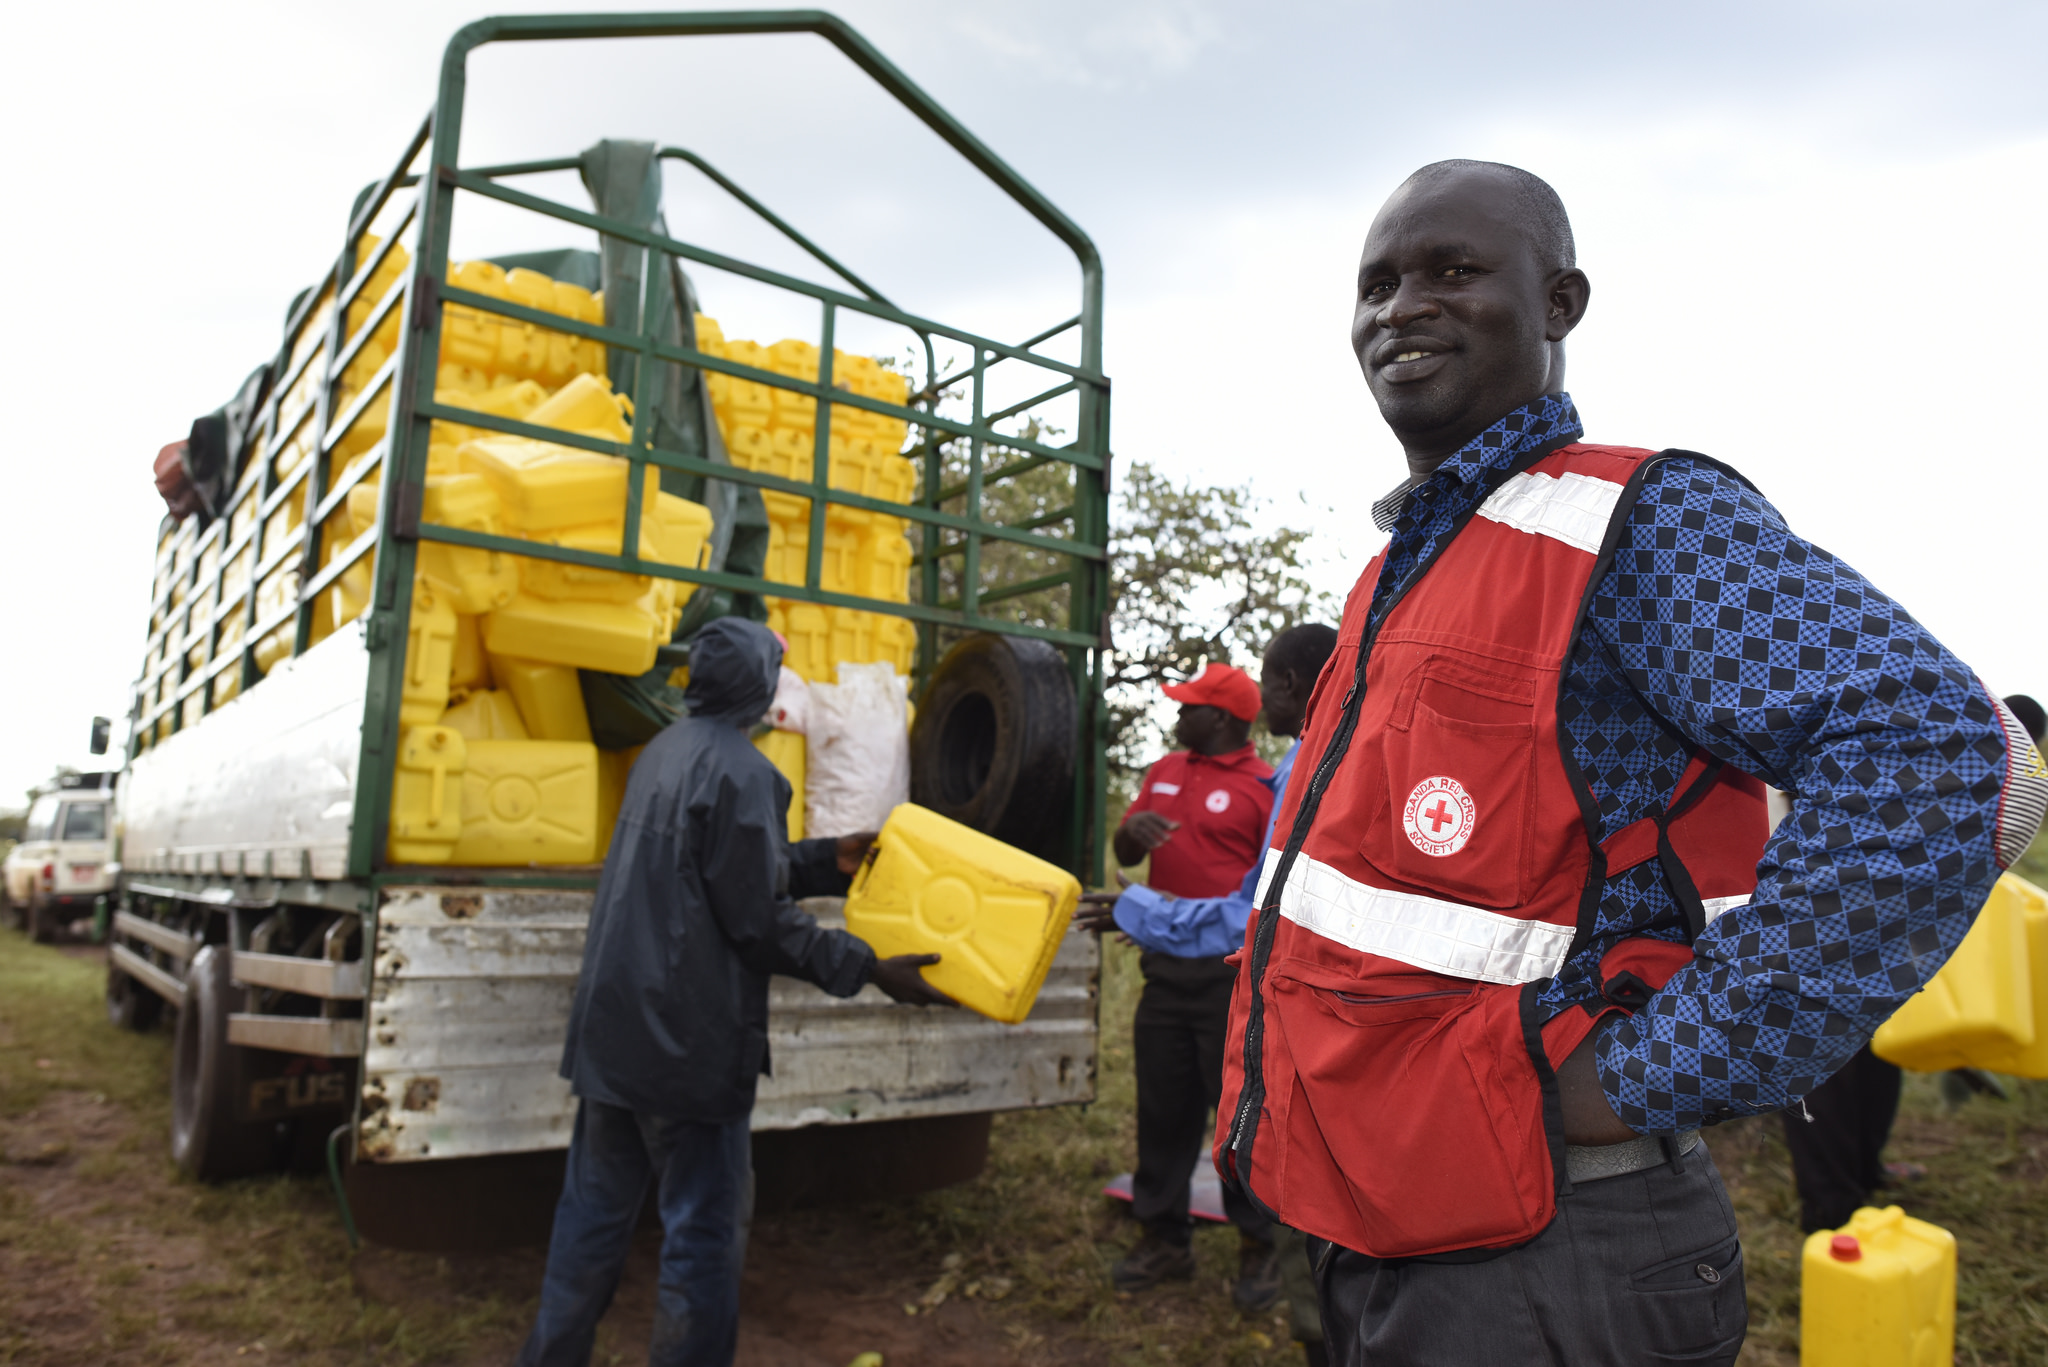 Red Cross helping people after natural disaster